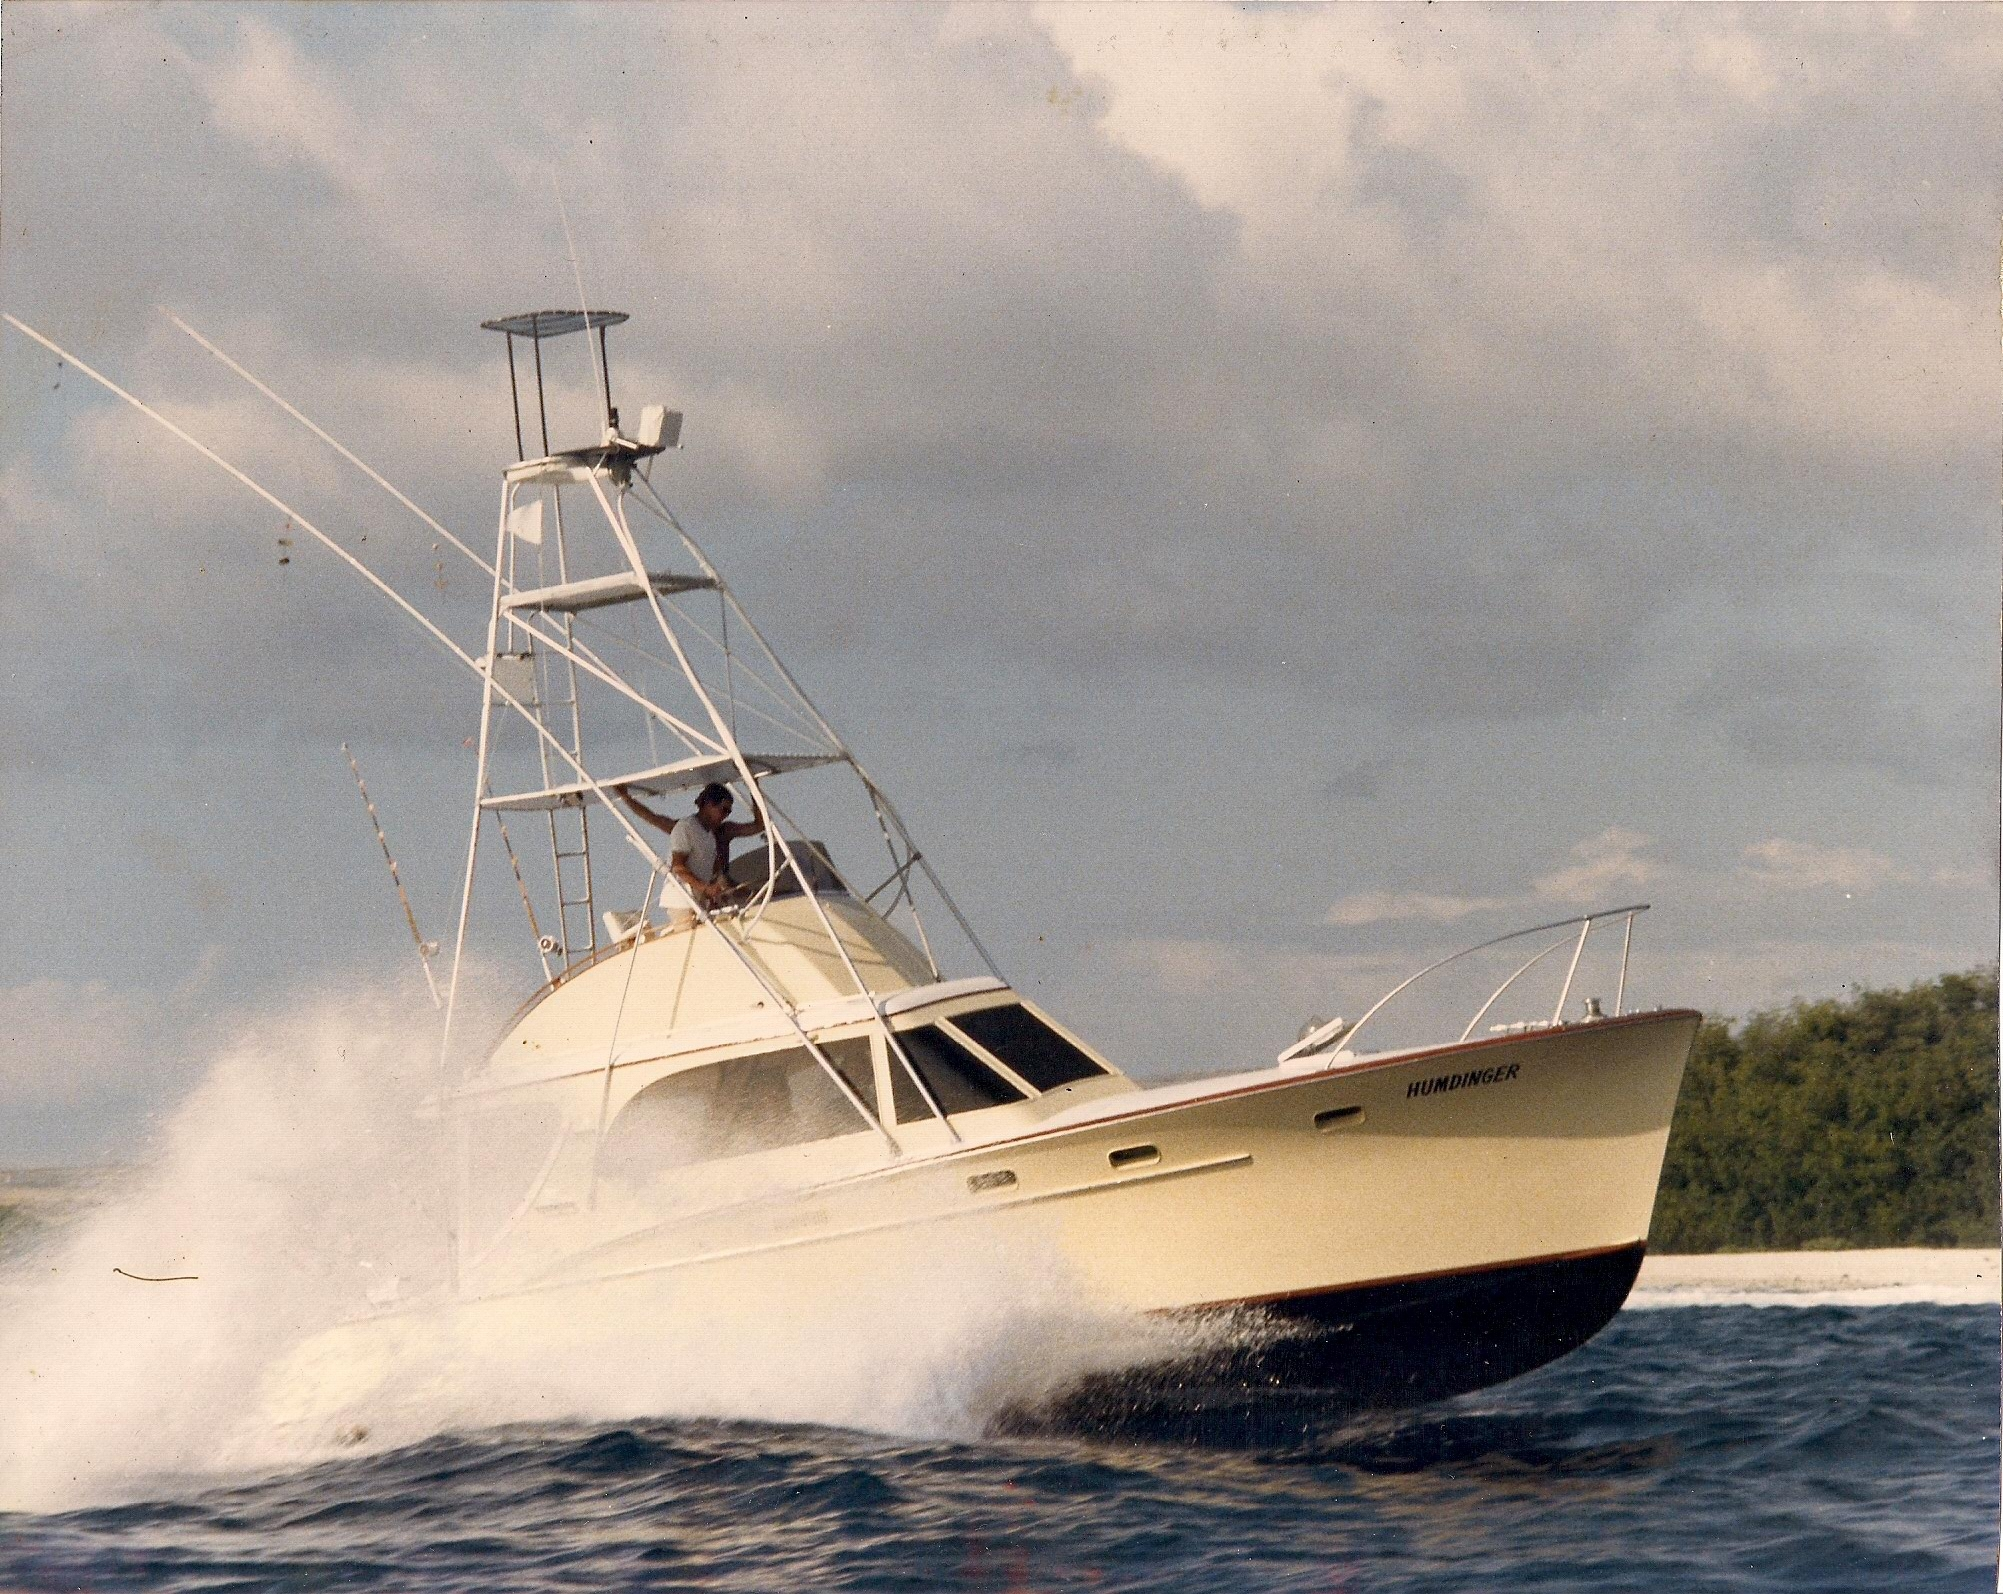 Humdinger sportfishing kona hawaii fishing charters in for Hawaii fishing charters